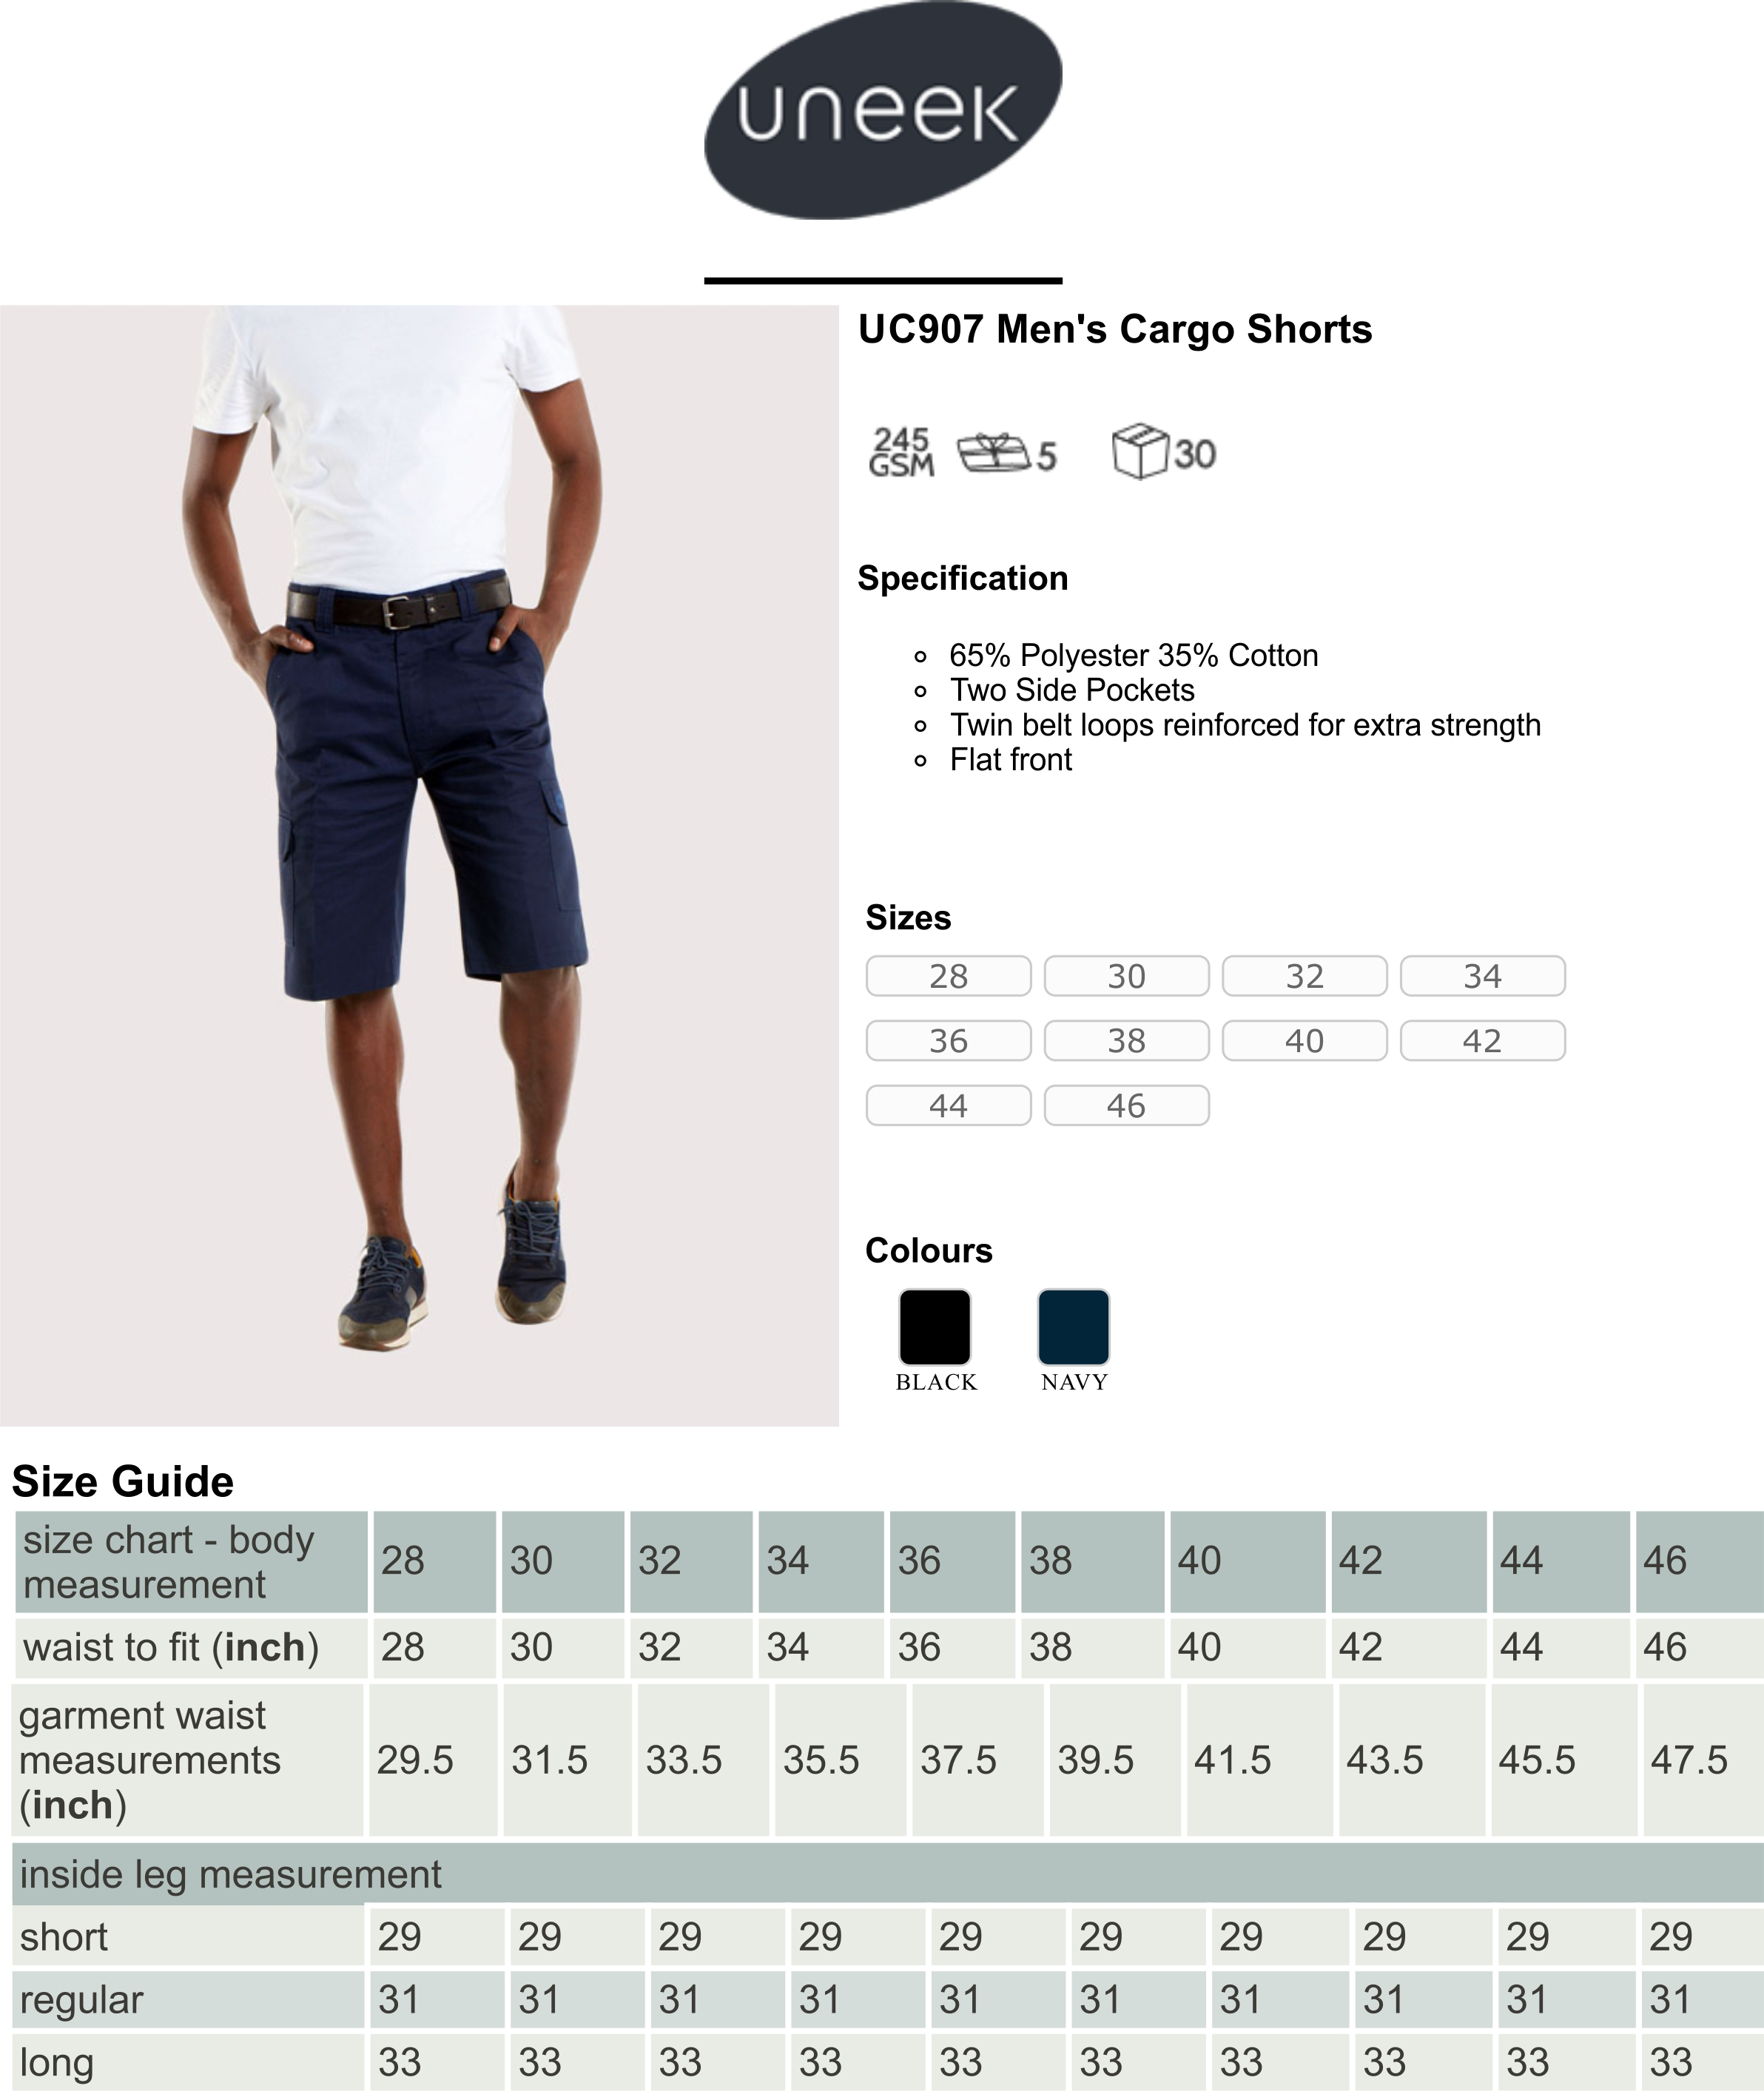 UC907 Cargo Shorts Spec Sheet.jpg